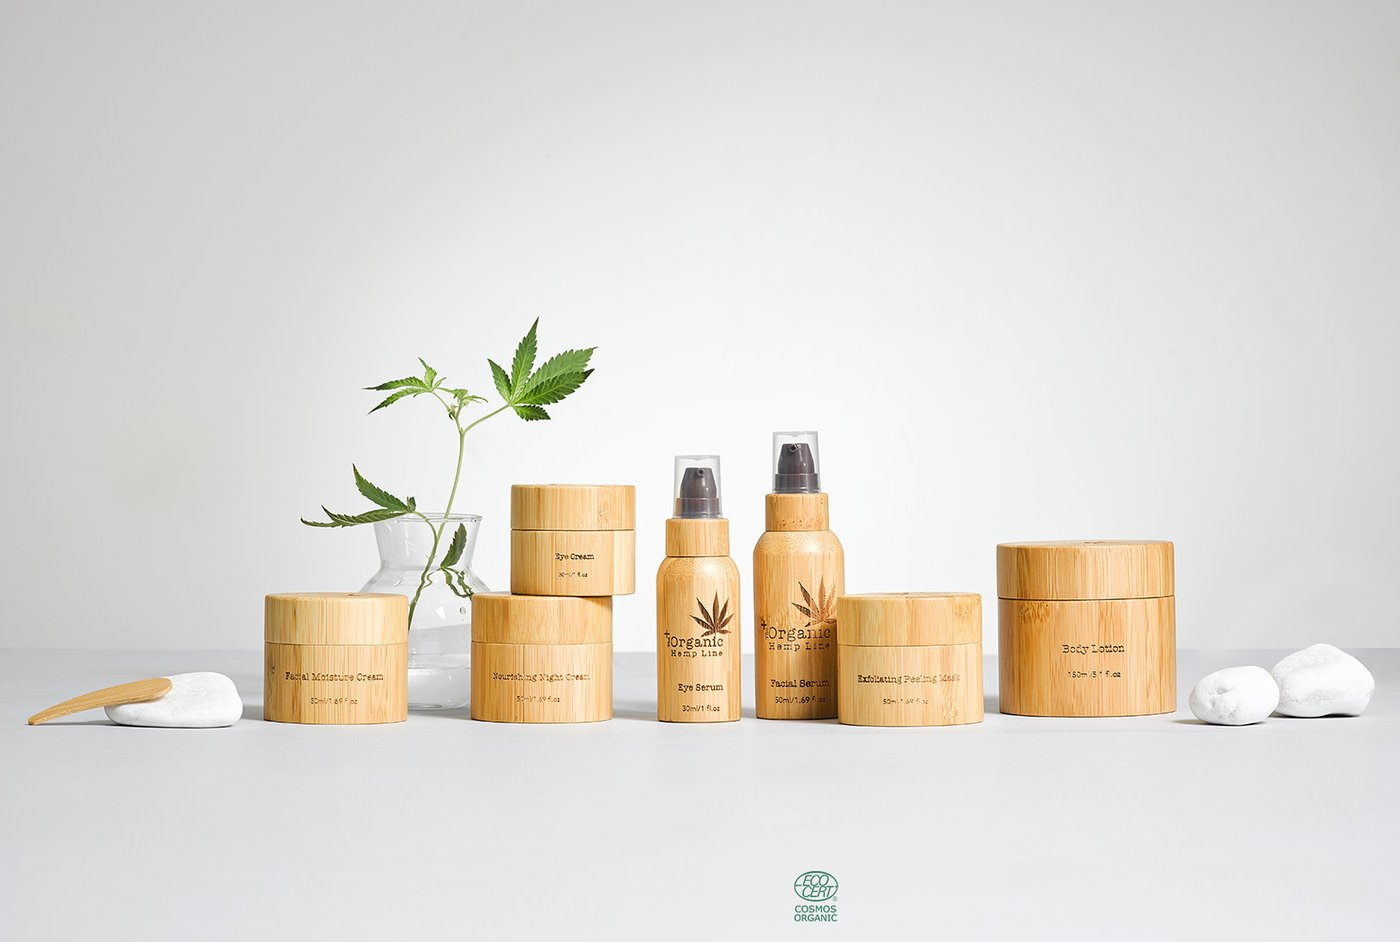 Introducing the Organic Hemp Line. - Years of cutting-edge research and development have led to this innovative skincare line, based on the natural richness of organic hemp seed oil. Every element of these products, including the attractive handmade bamboo packaging, comes from natural, organic sources and offers the best for your skin, body, and soul.